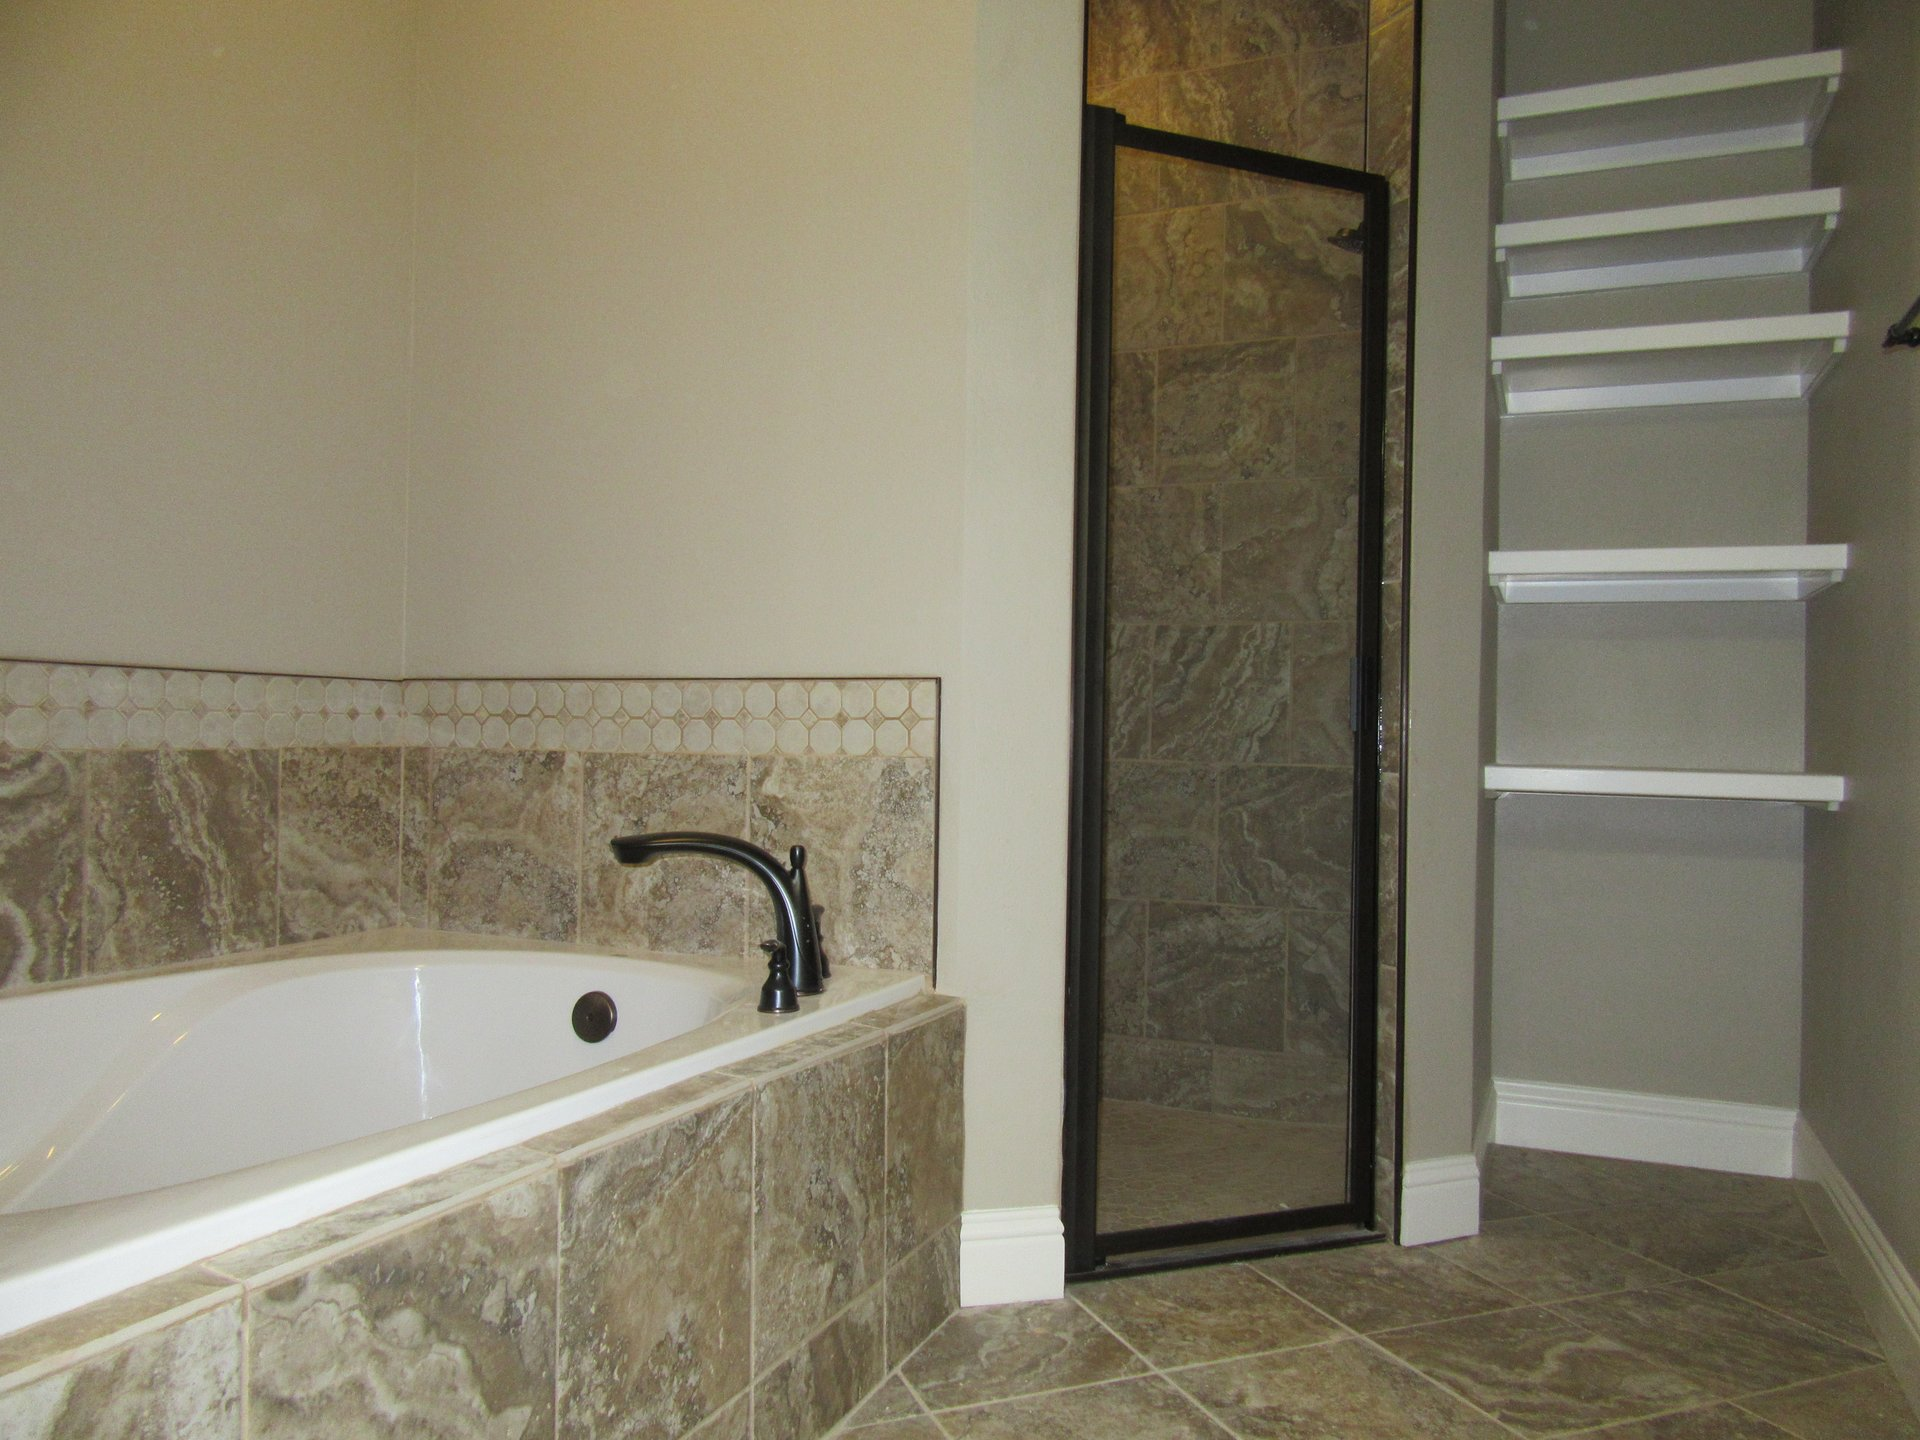 bathroom in new home built by Cornerstone Custom Homes